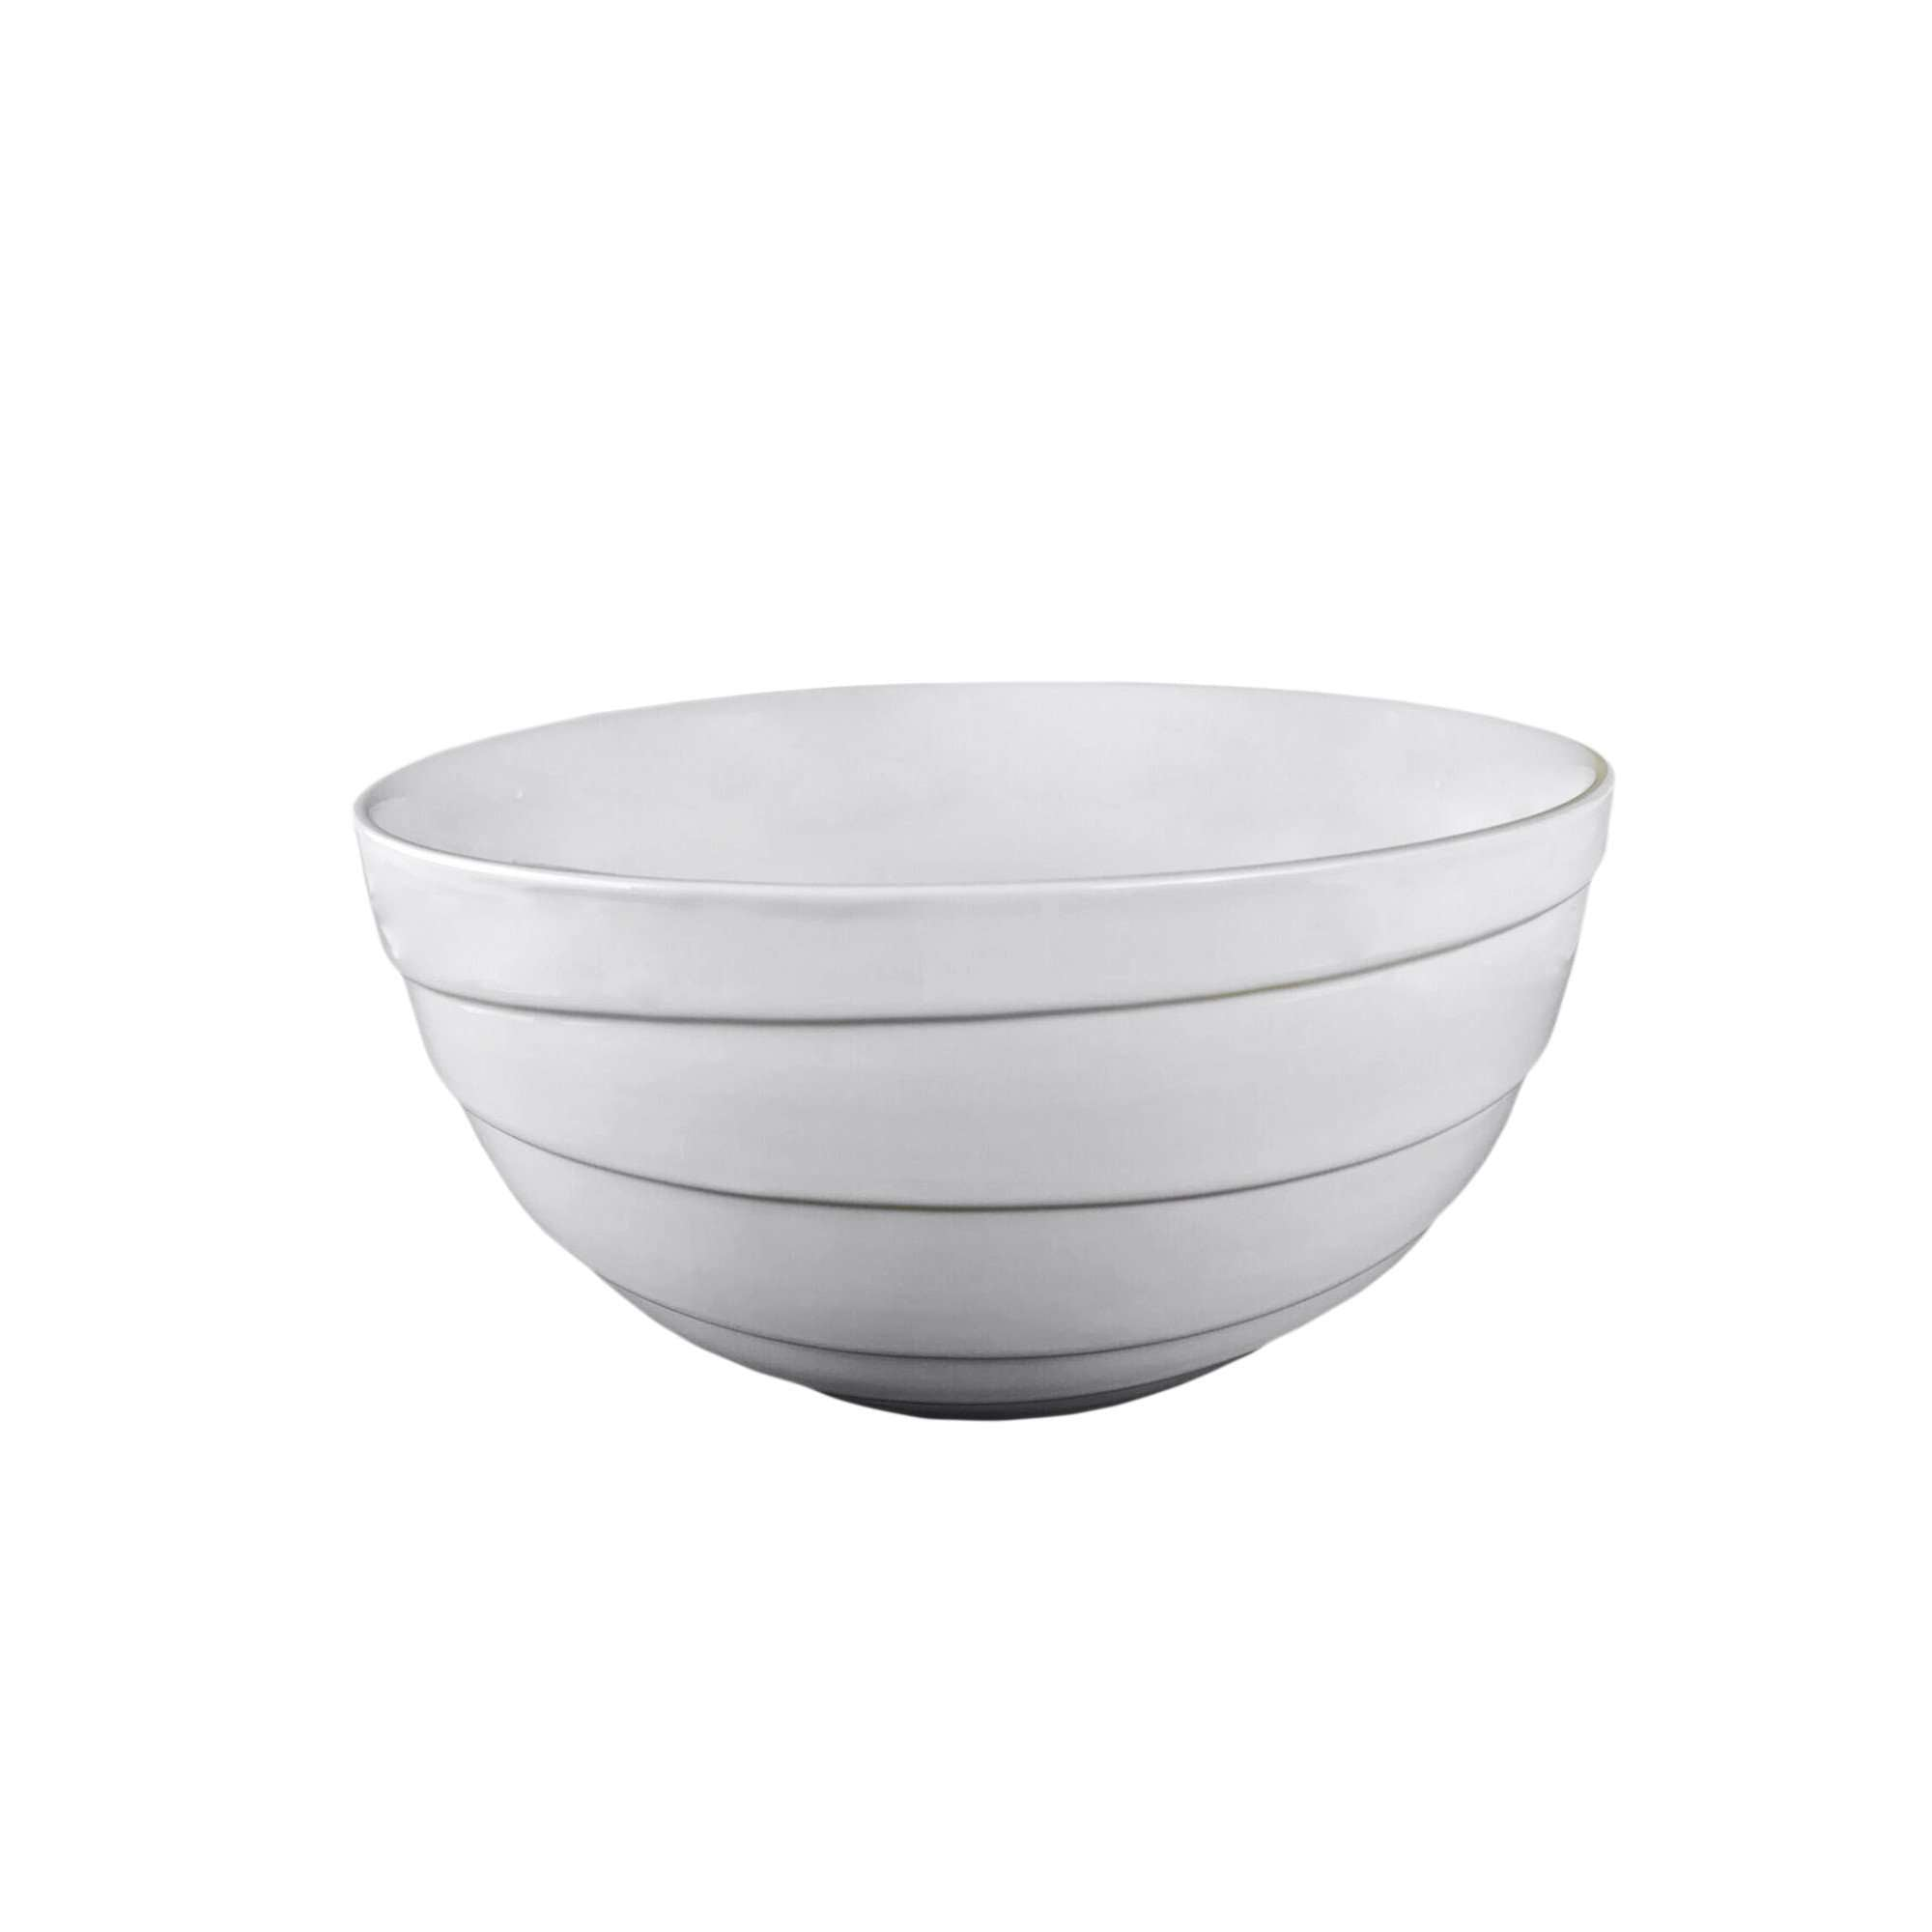 "Spinning Collection 9.5"" (24 cm) Porcelain Salad Bowl"